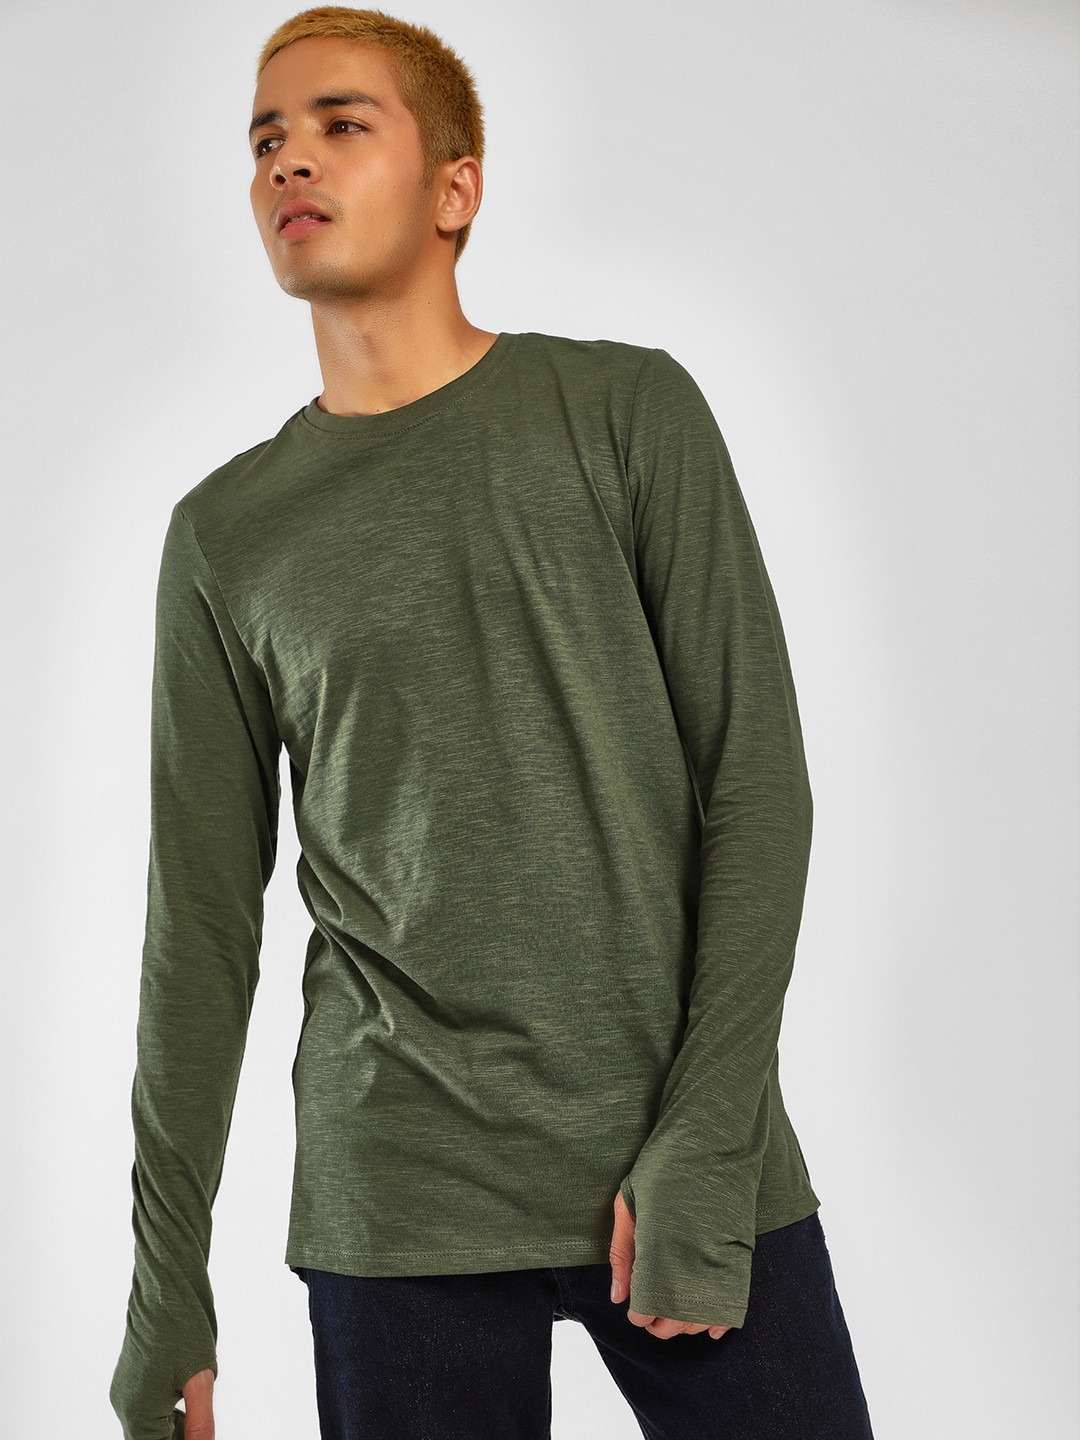 SKULT By Shahid Kapoor Green Basic Thumbhole Sleeve T-Shirt 1